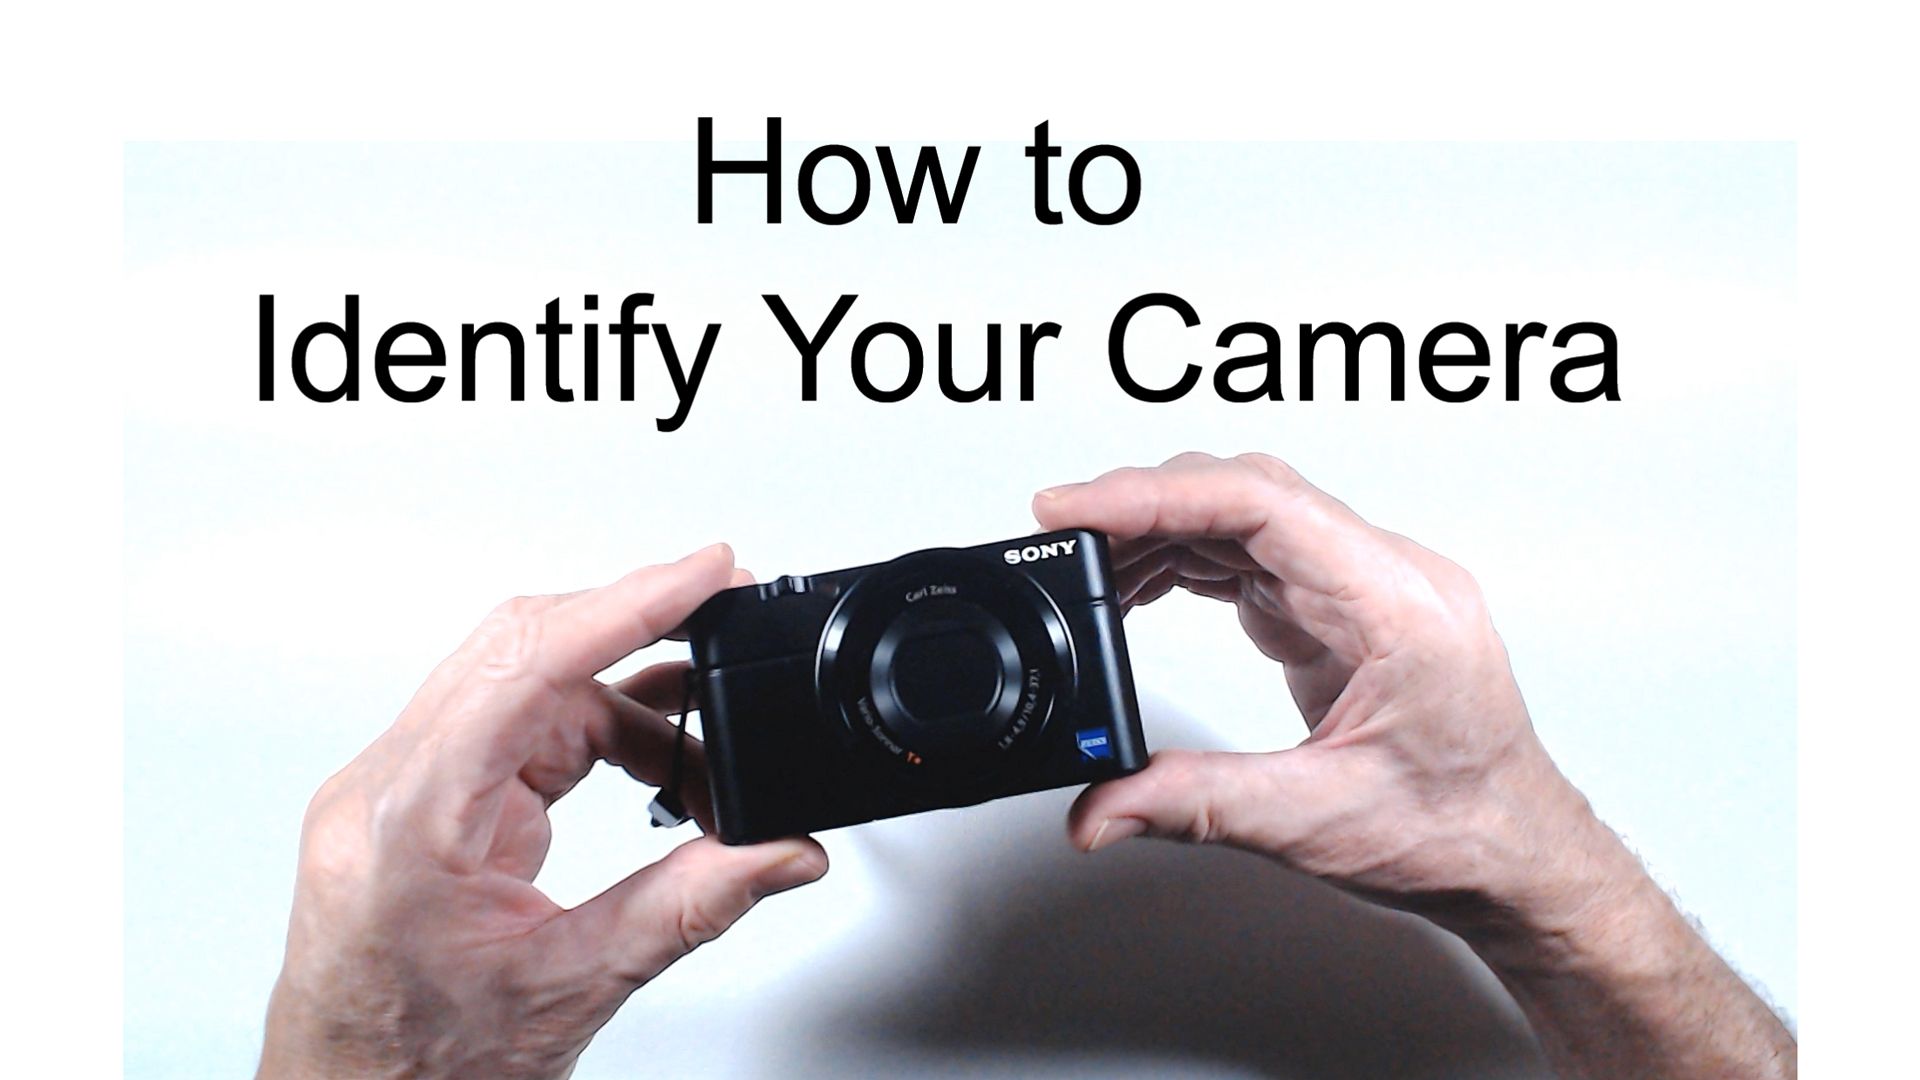 How To Identify Your Camera Make and Model